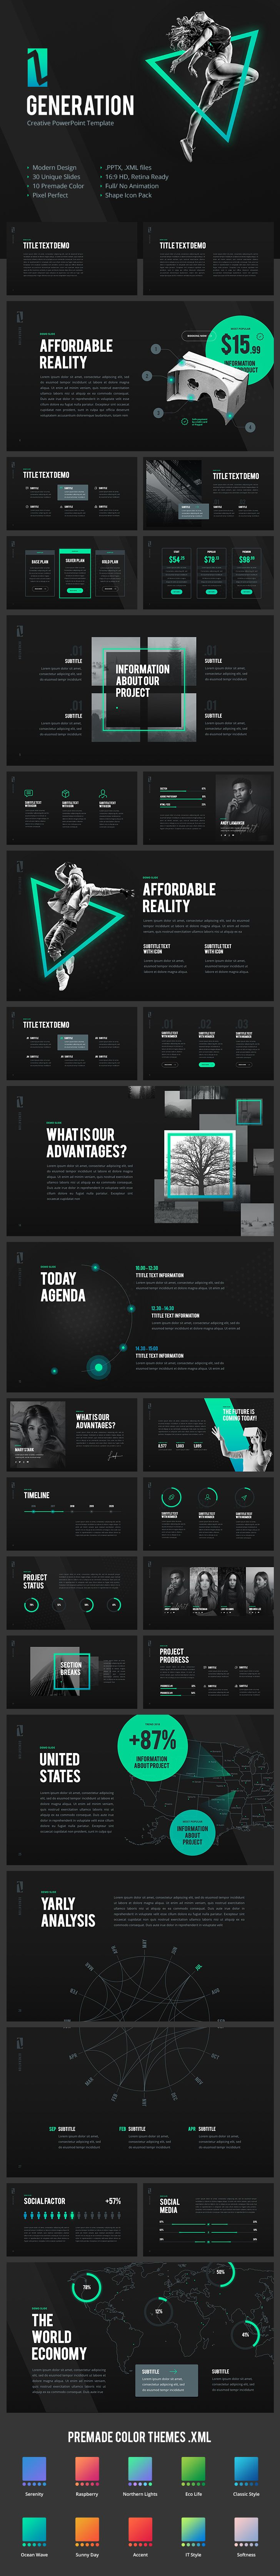 57 best powerpoint template images on pinterest ui ux animation generation z creative powerpoint template 30 unique slides 10 pre made color pptx full no animation hd aspect ratio creative and modern template toneelgroepblik Choice Image